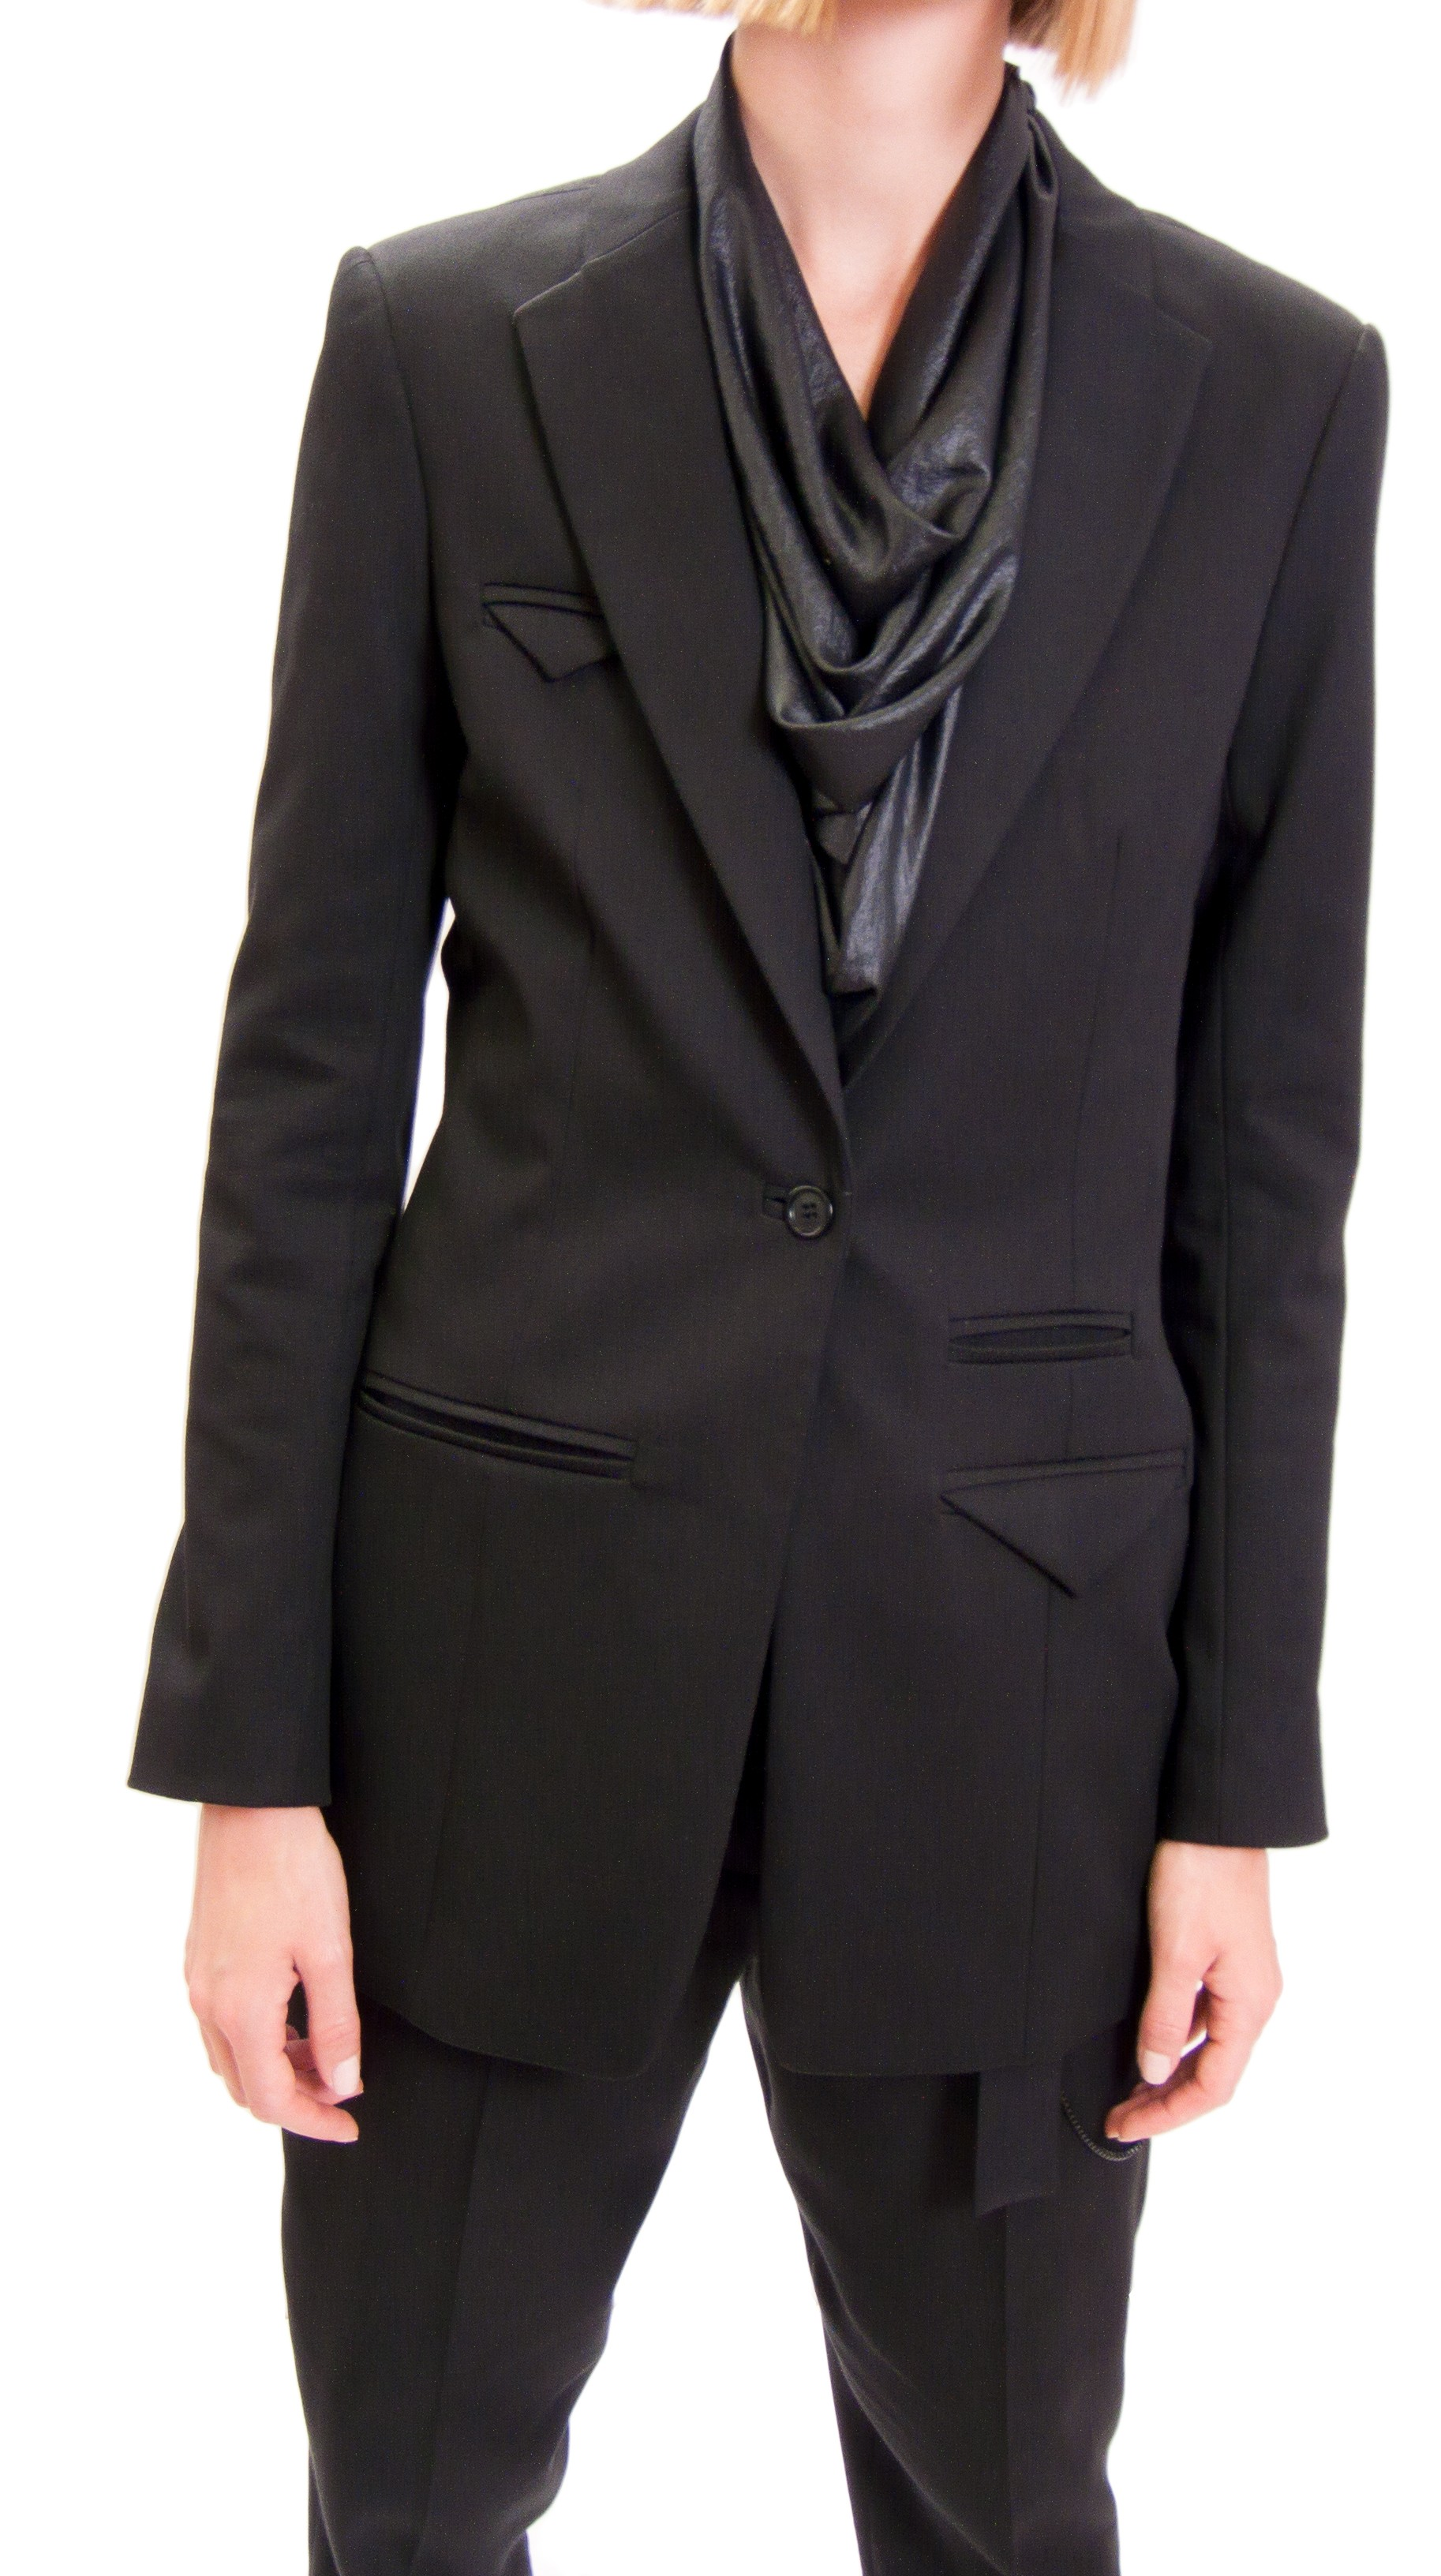 JSP SLIM BLACK  JACKET